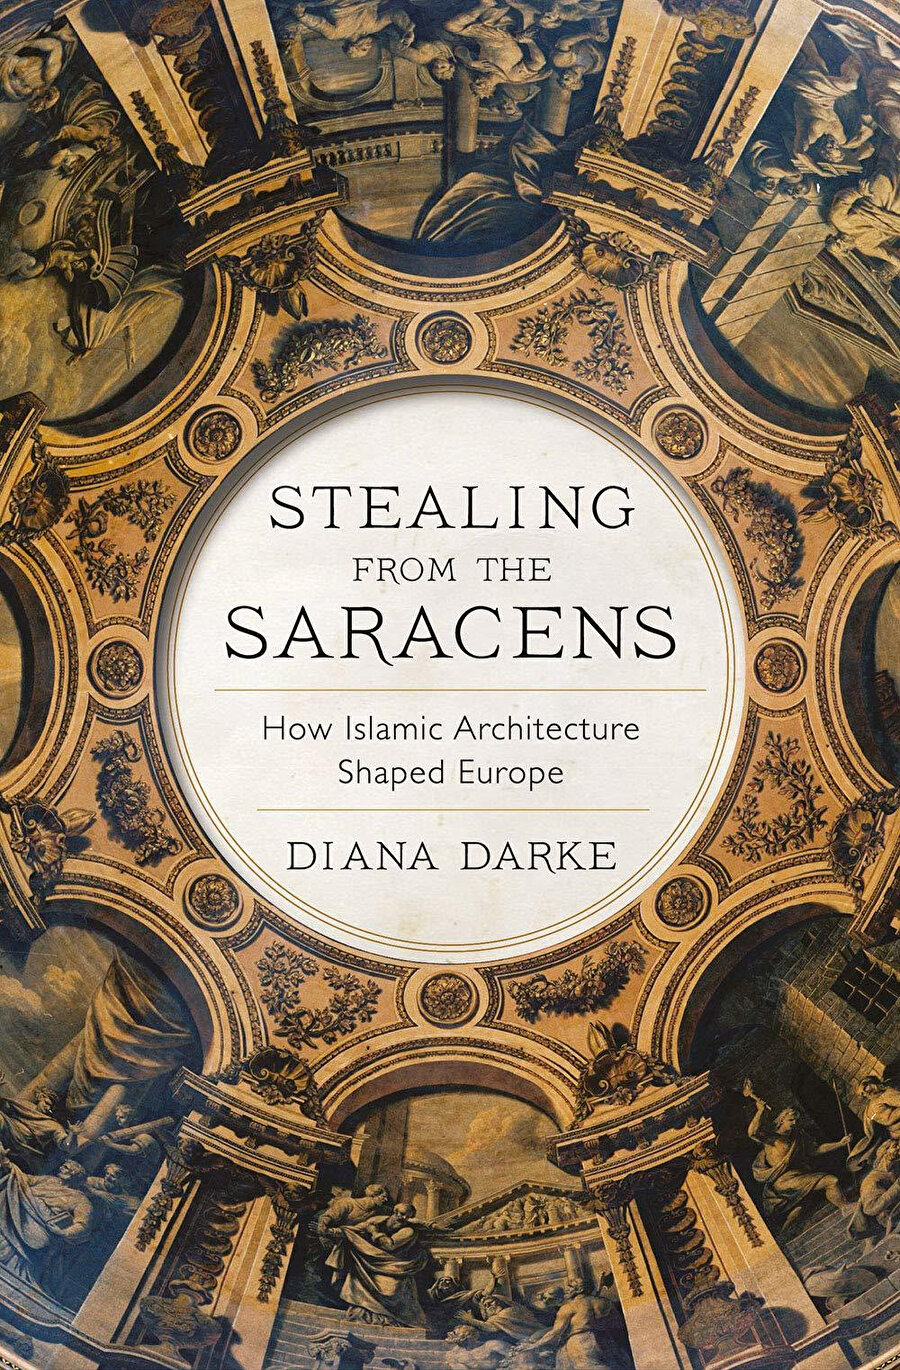 Diana Darke, Stealing from the Saracens: How Islamic Architecture Shaped Europe, 2020.